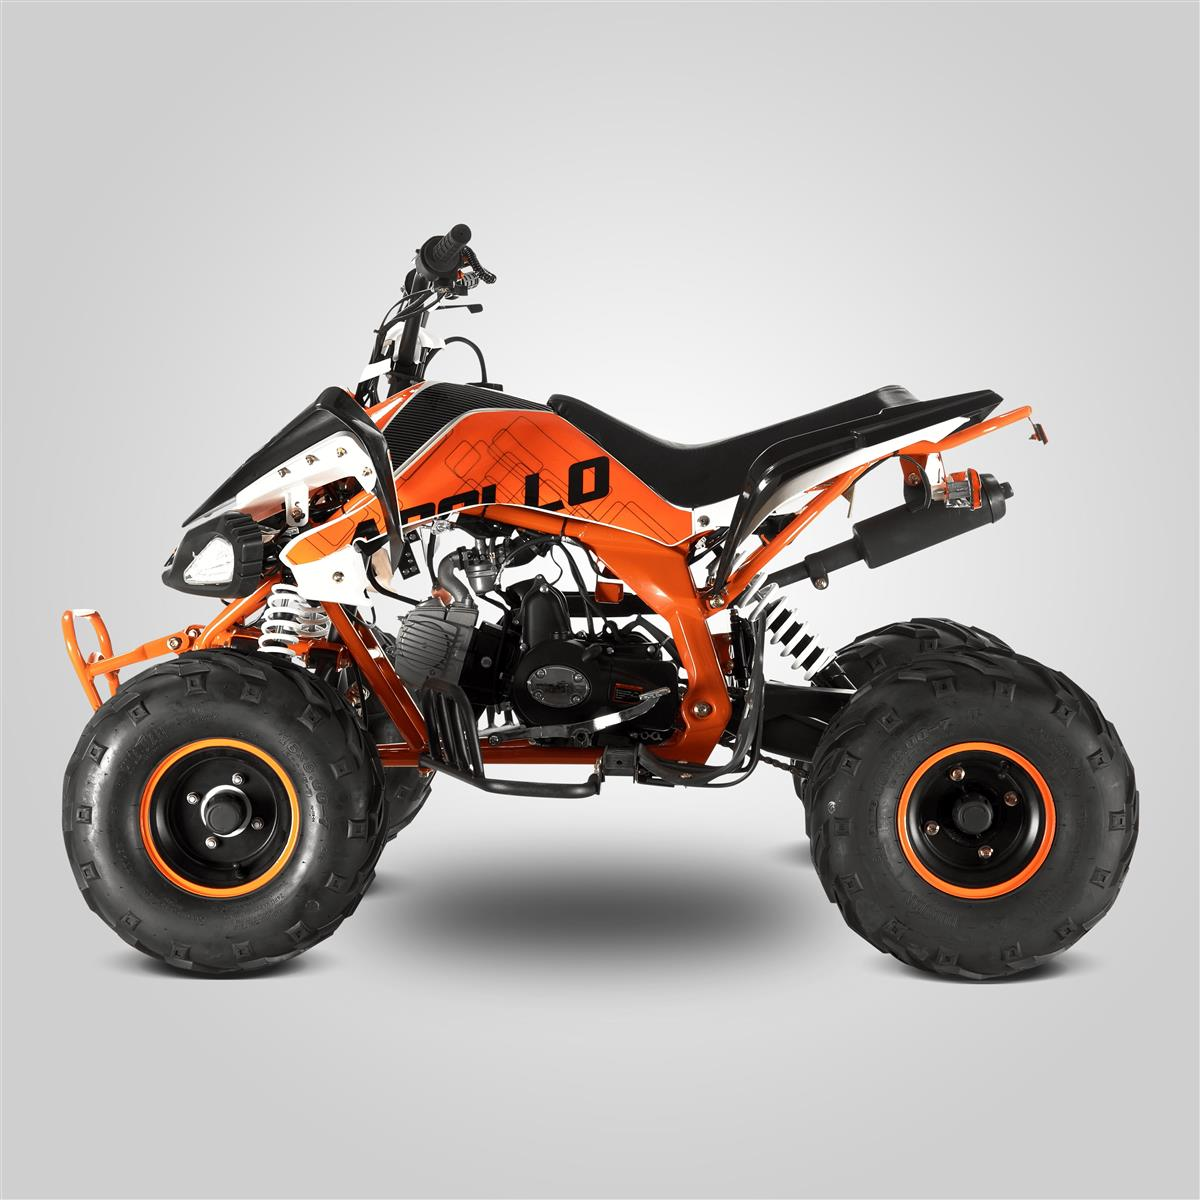 quad enfant 110cc apollo urricane smallmx dirt bike pit bike quads minimoto. Black Bedroom Furniture Sets. Home Design Ideas